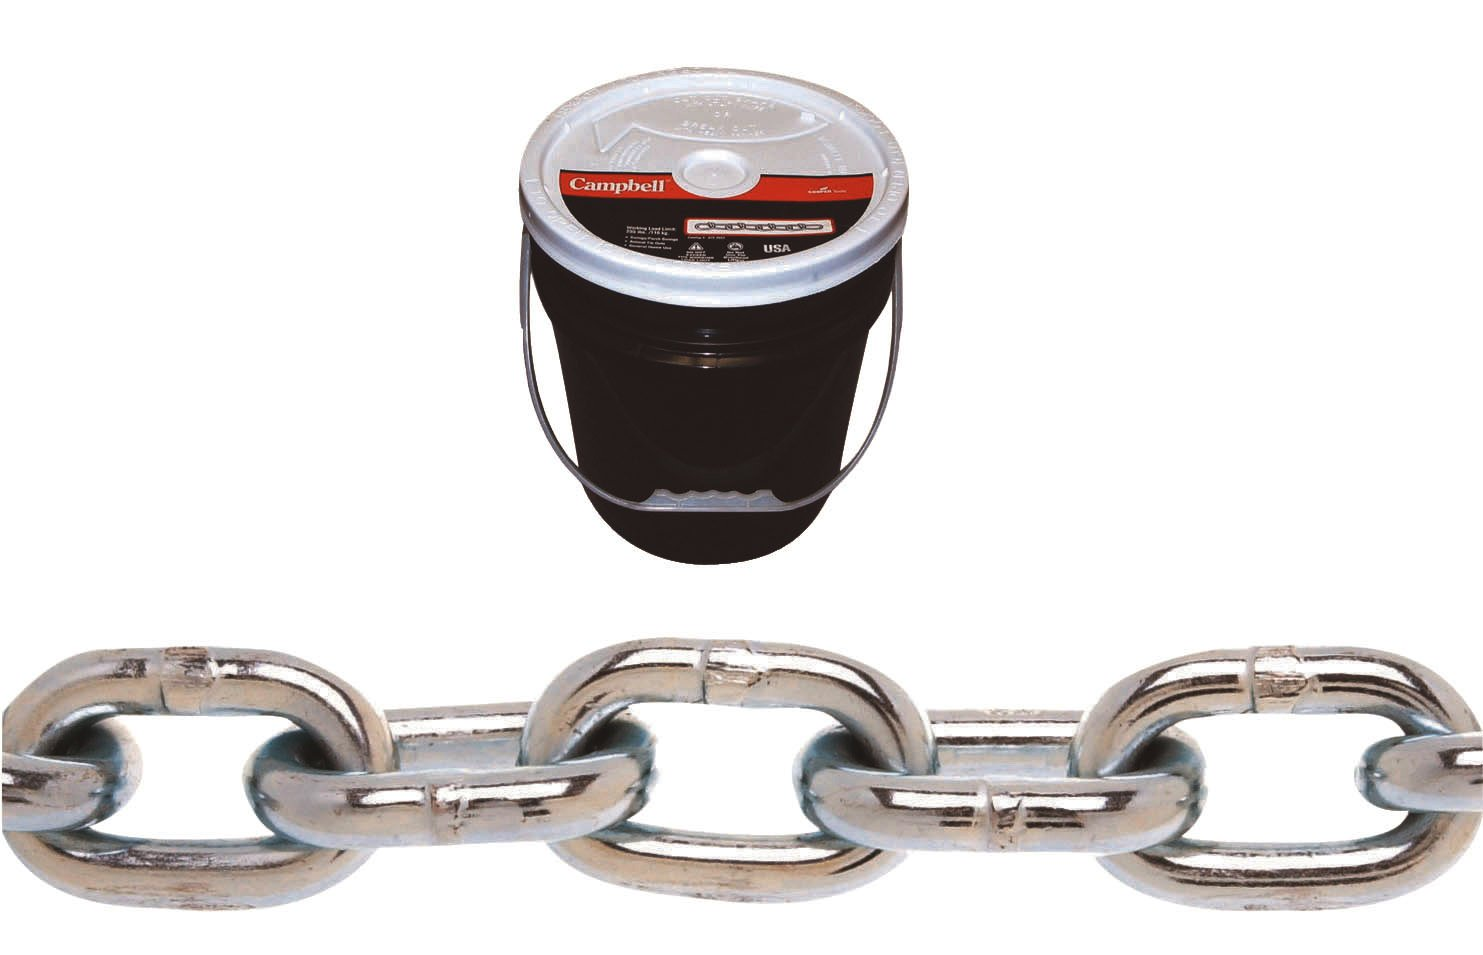 CAMPBELL 0140423 System 3 Grade 30 Low Carbon Steel Proof Coil Chain in Round Pail, Zinc Plated, 1/4-Inch Trade, 0.26-Inch Diameter, 141-Feet Length, 1300-Pound Load Capacity 1/4 Inch Trade 0.26 Inch Diameter 141' Length 1300 lbs. Load Capacity